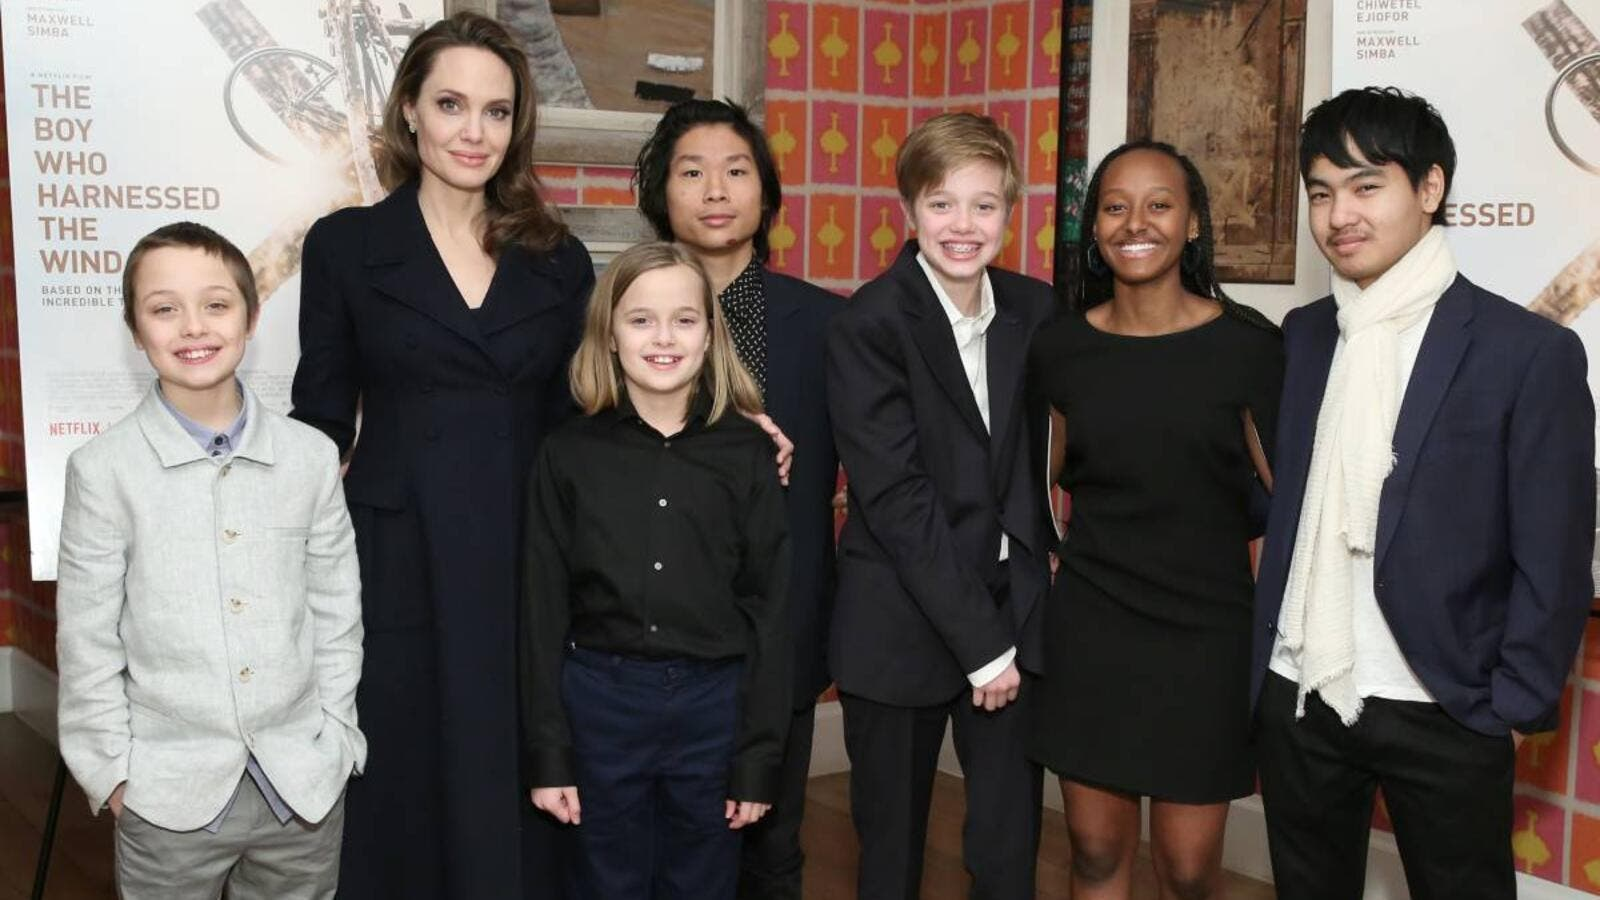 Angelina Jolie has been jumping into her kids martial arts classes to prepare for her role in The Eternals